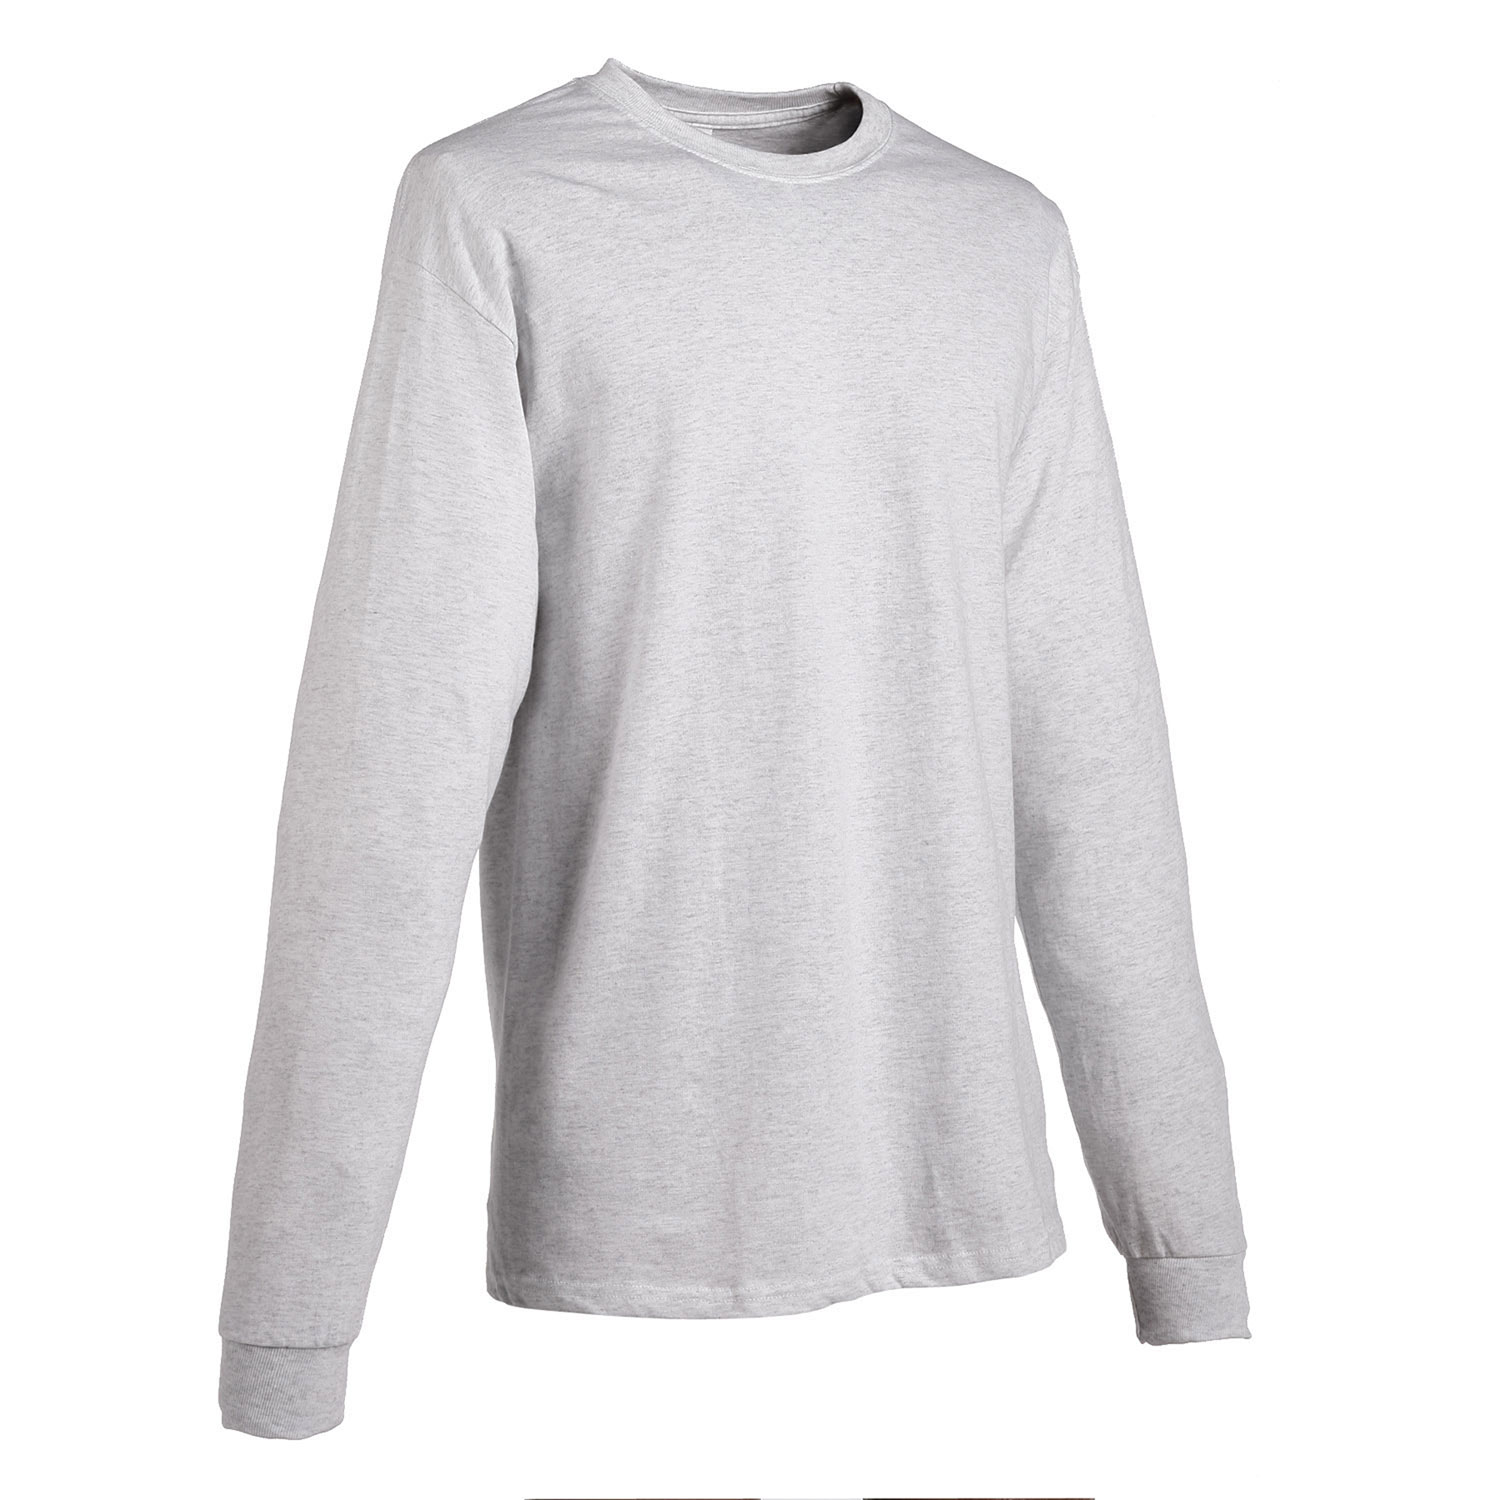 Hanes Long Sleeve Heavyweight T Shirt